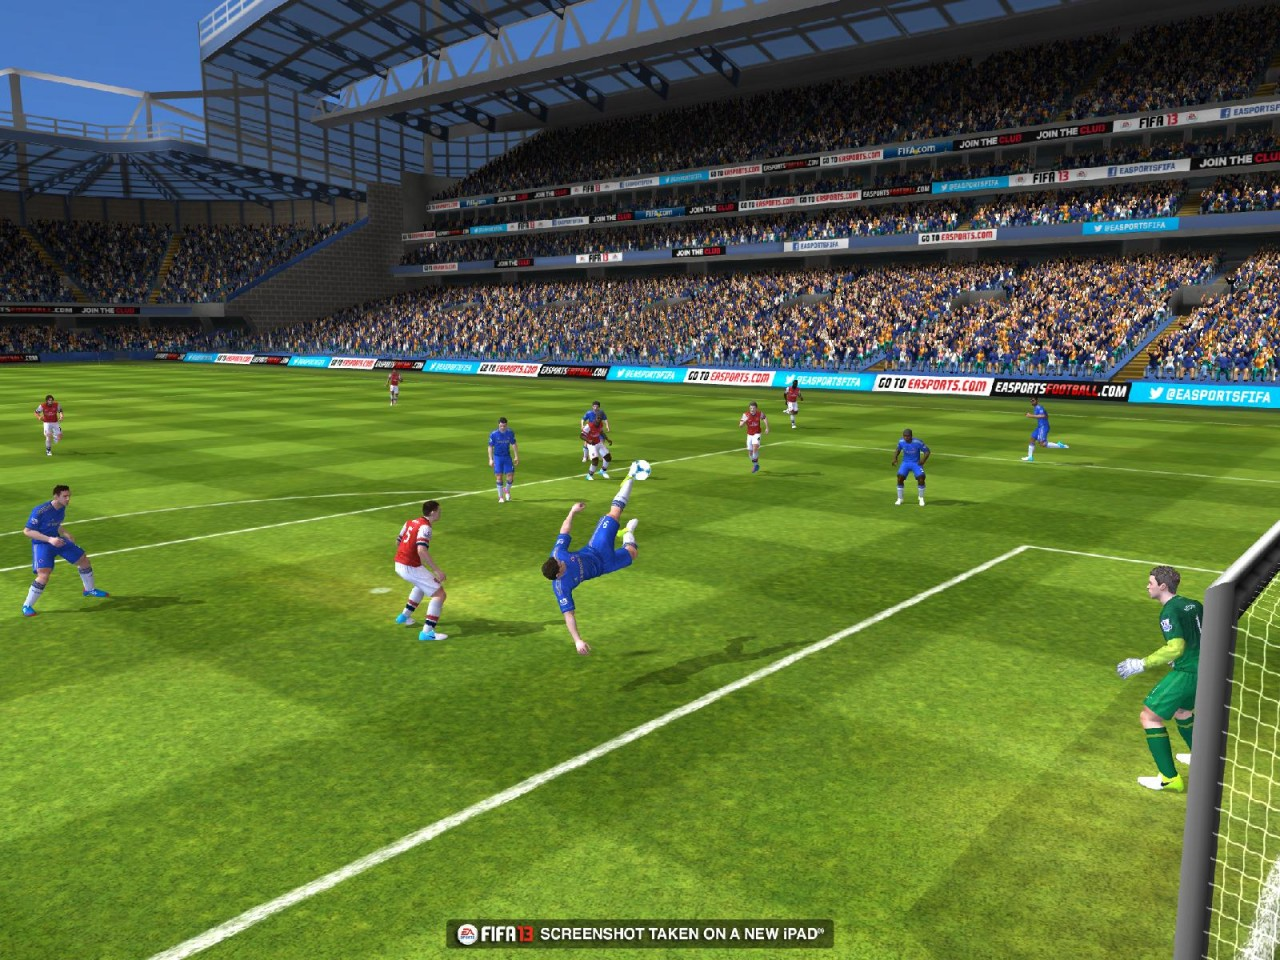 FIFA bet at home Kundendienstnummer 15 | Gameplay | Gamescom 2014 App Store bet at home que significa el beta | Twitch (1080p) - YouTube